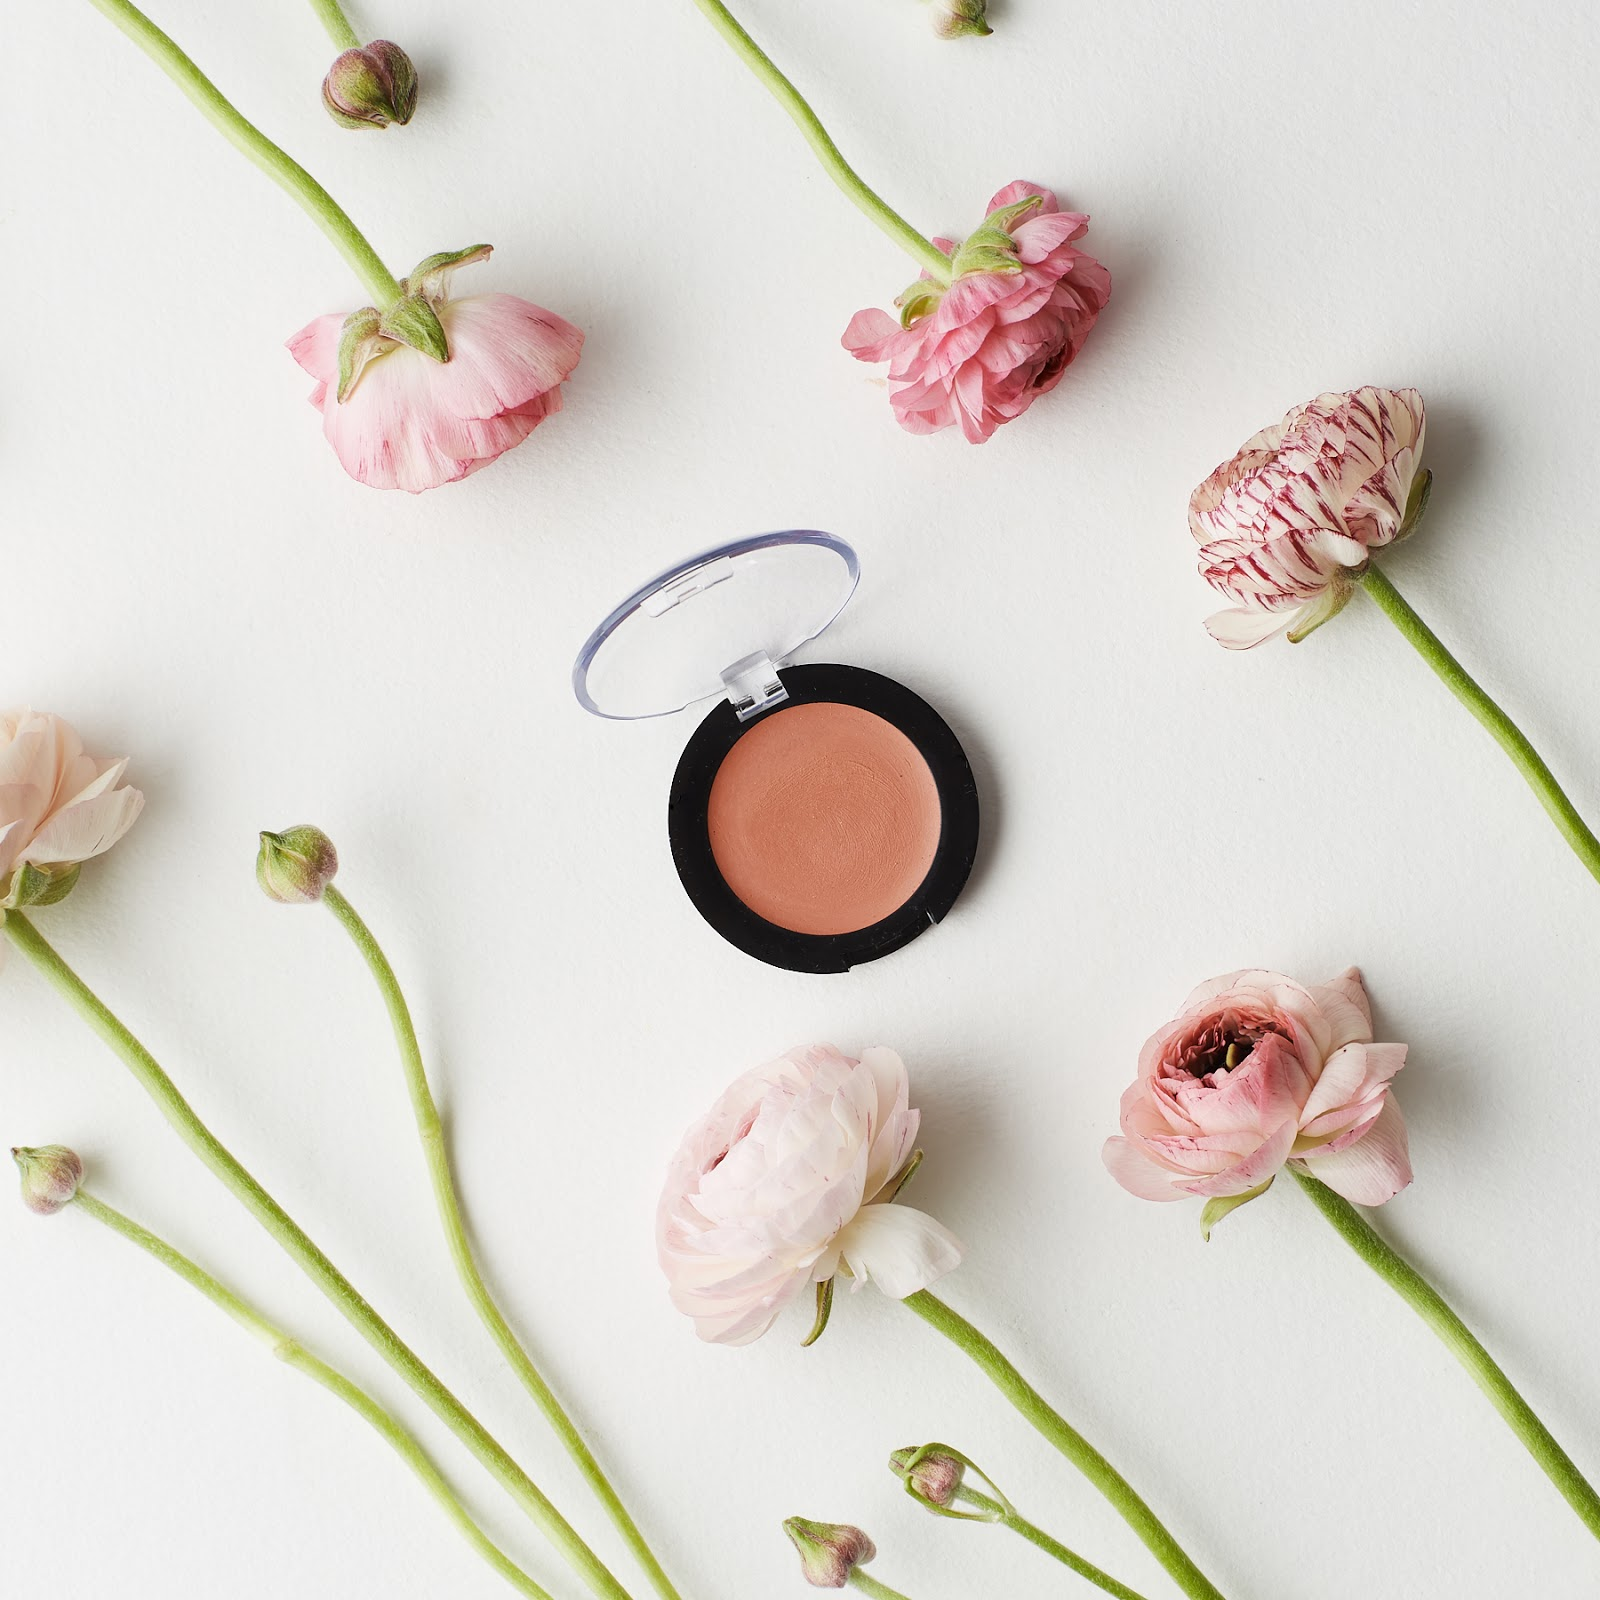 The All Natural Face Vegan Matte Cream Blush Review peachy rose organic nontoxic makeup dye free hellolindasau